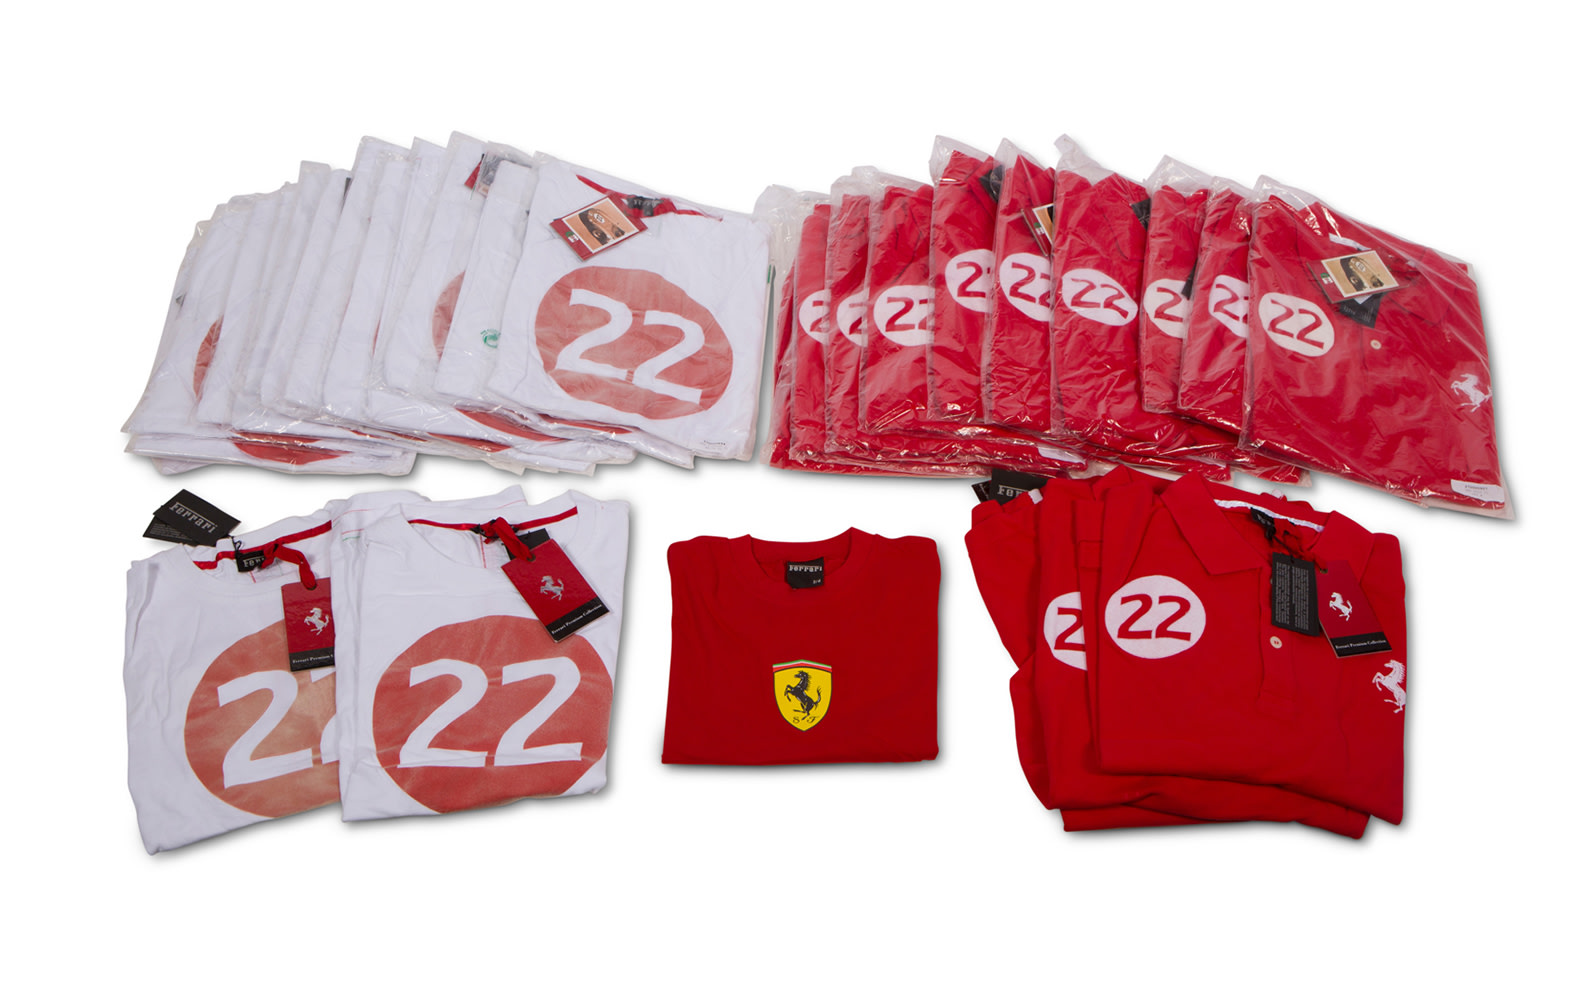 Ferrari Branded T-Shirts and Polo Shirts, Two Styles in Varying Sizes